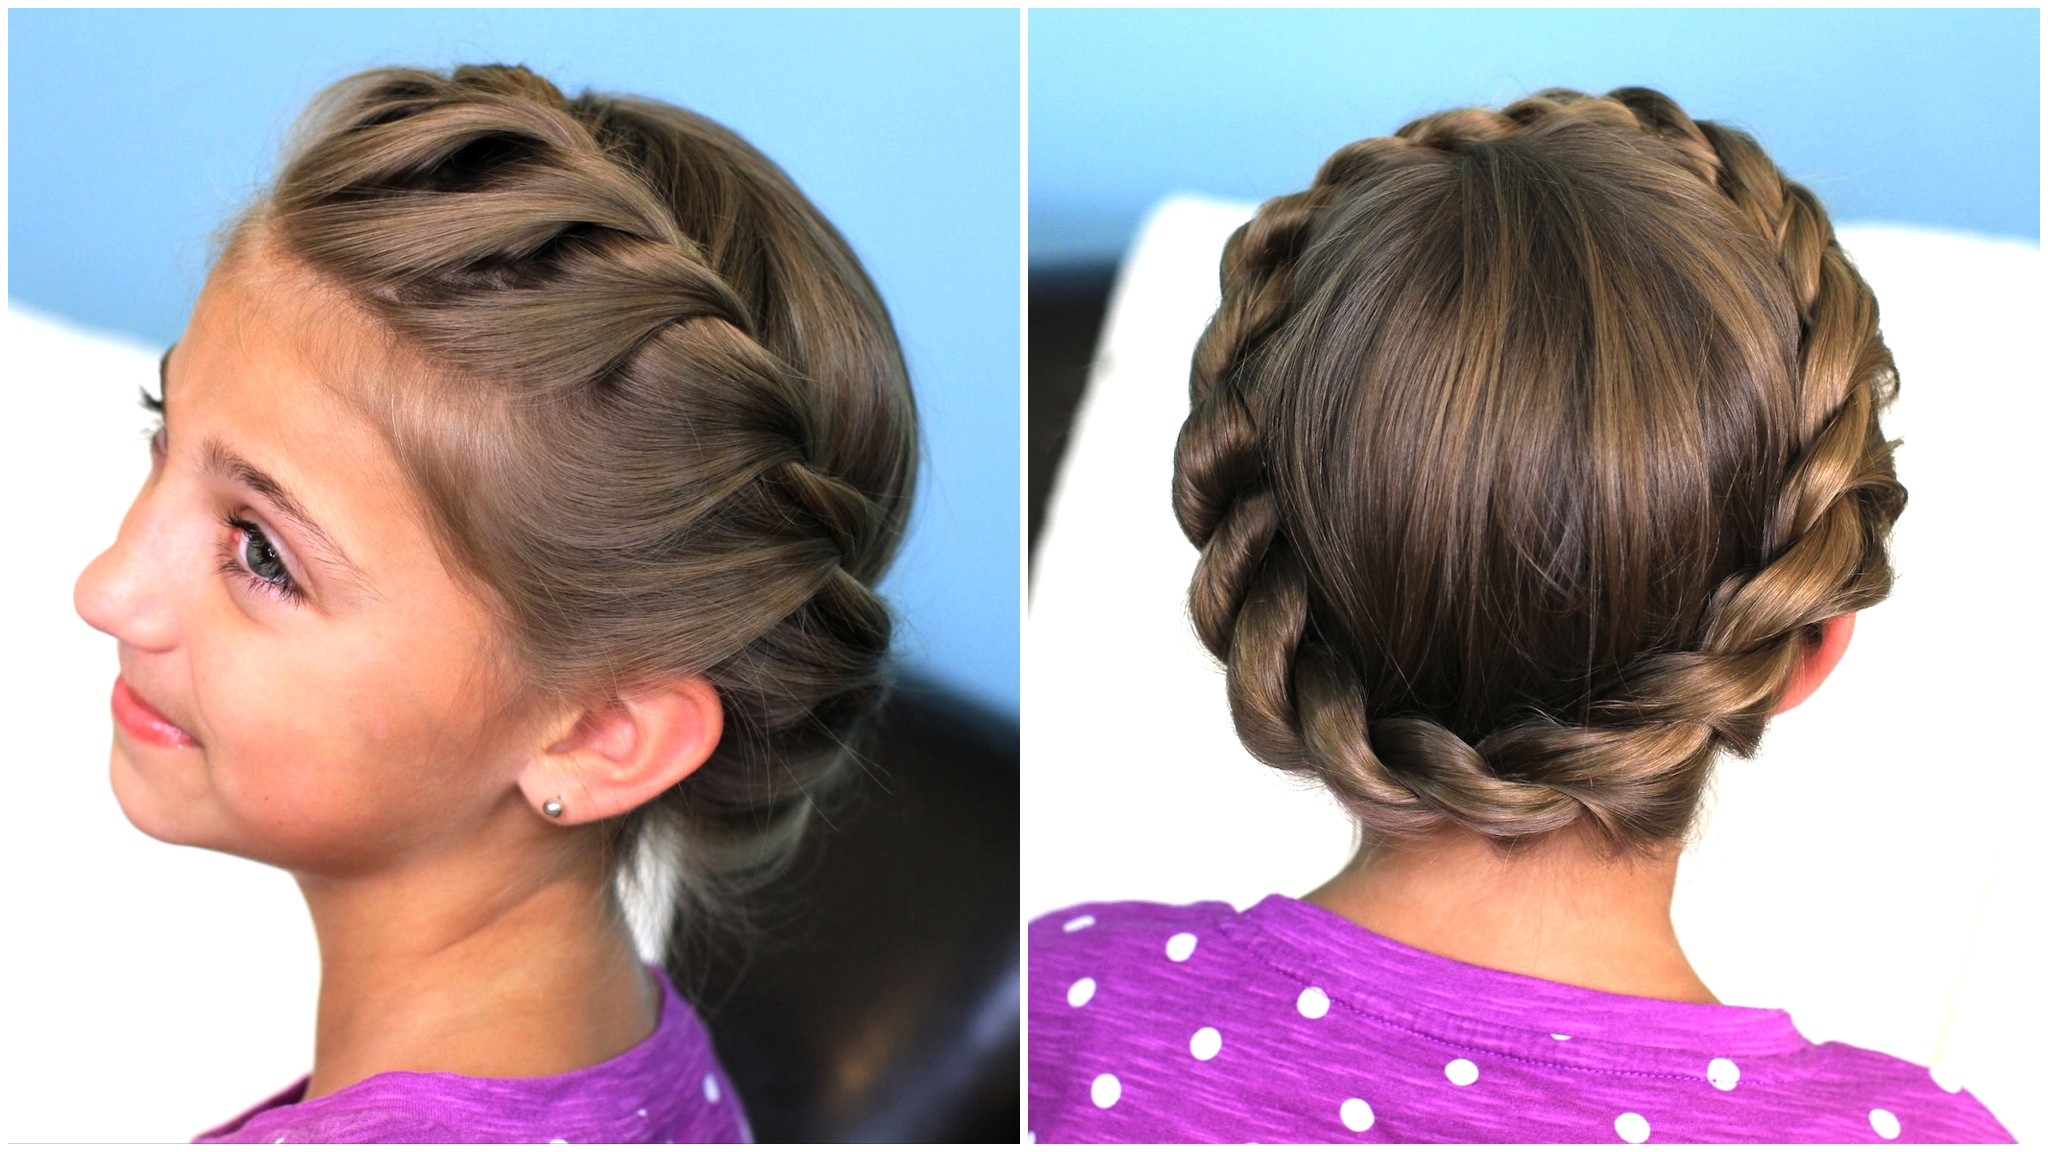 Twisted Hairstyles For Girls  Crown Rope Twist Braid Updo Hairstyles